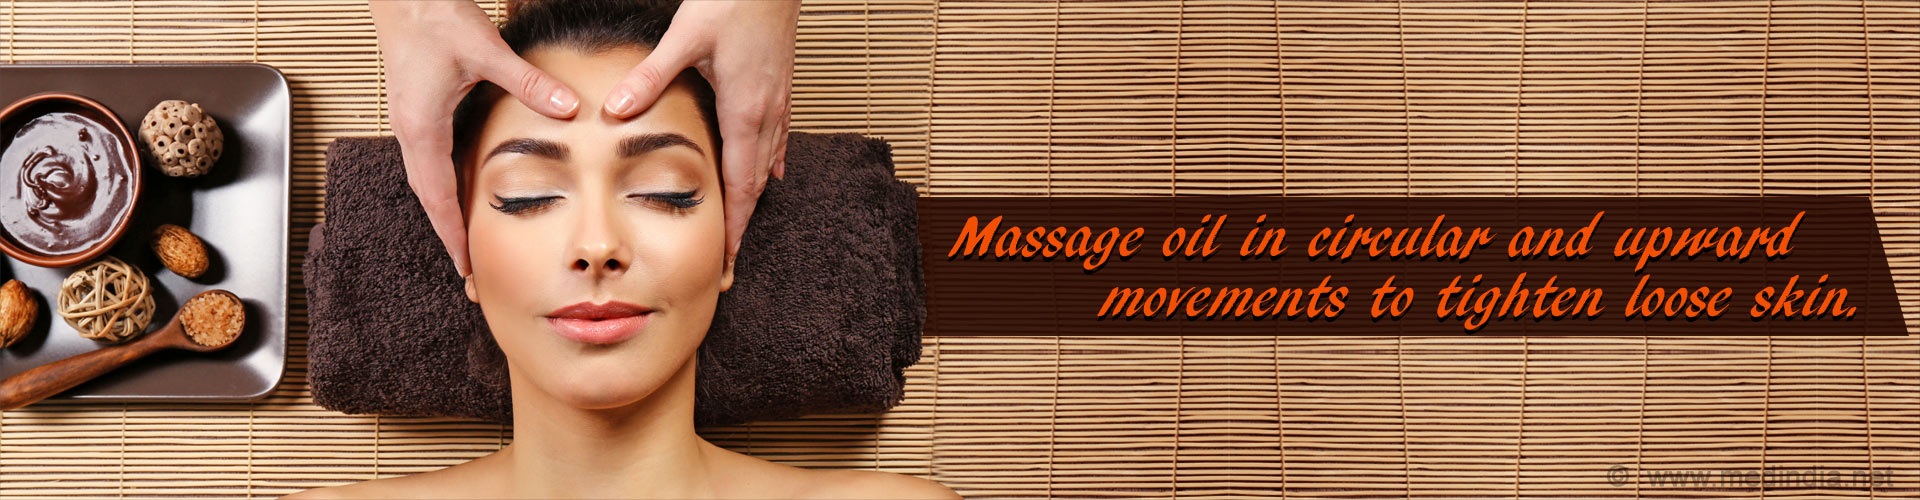 Massage oil in circular and upward movements to tighten loose skin.